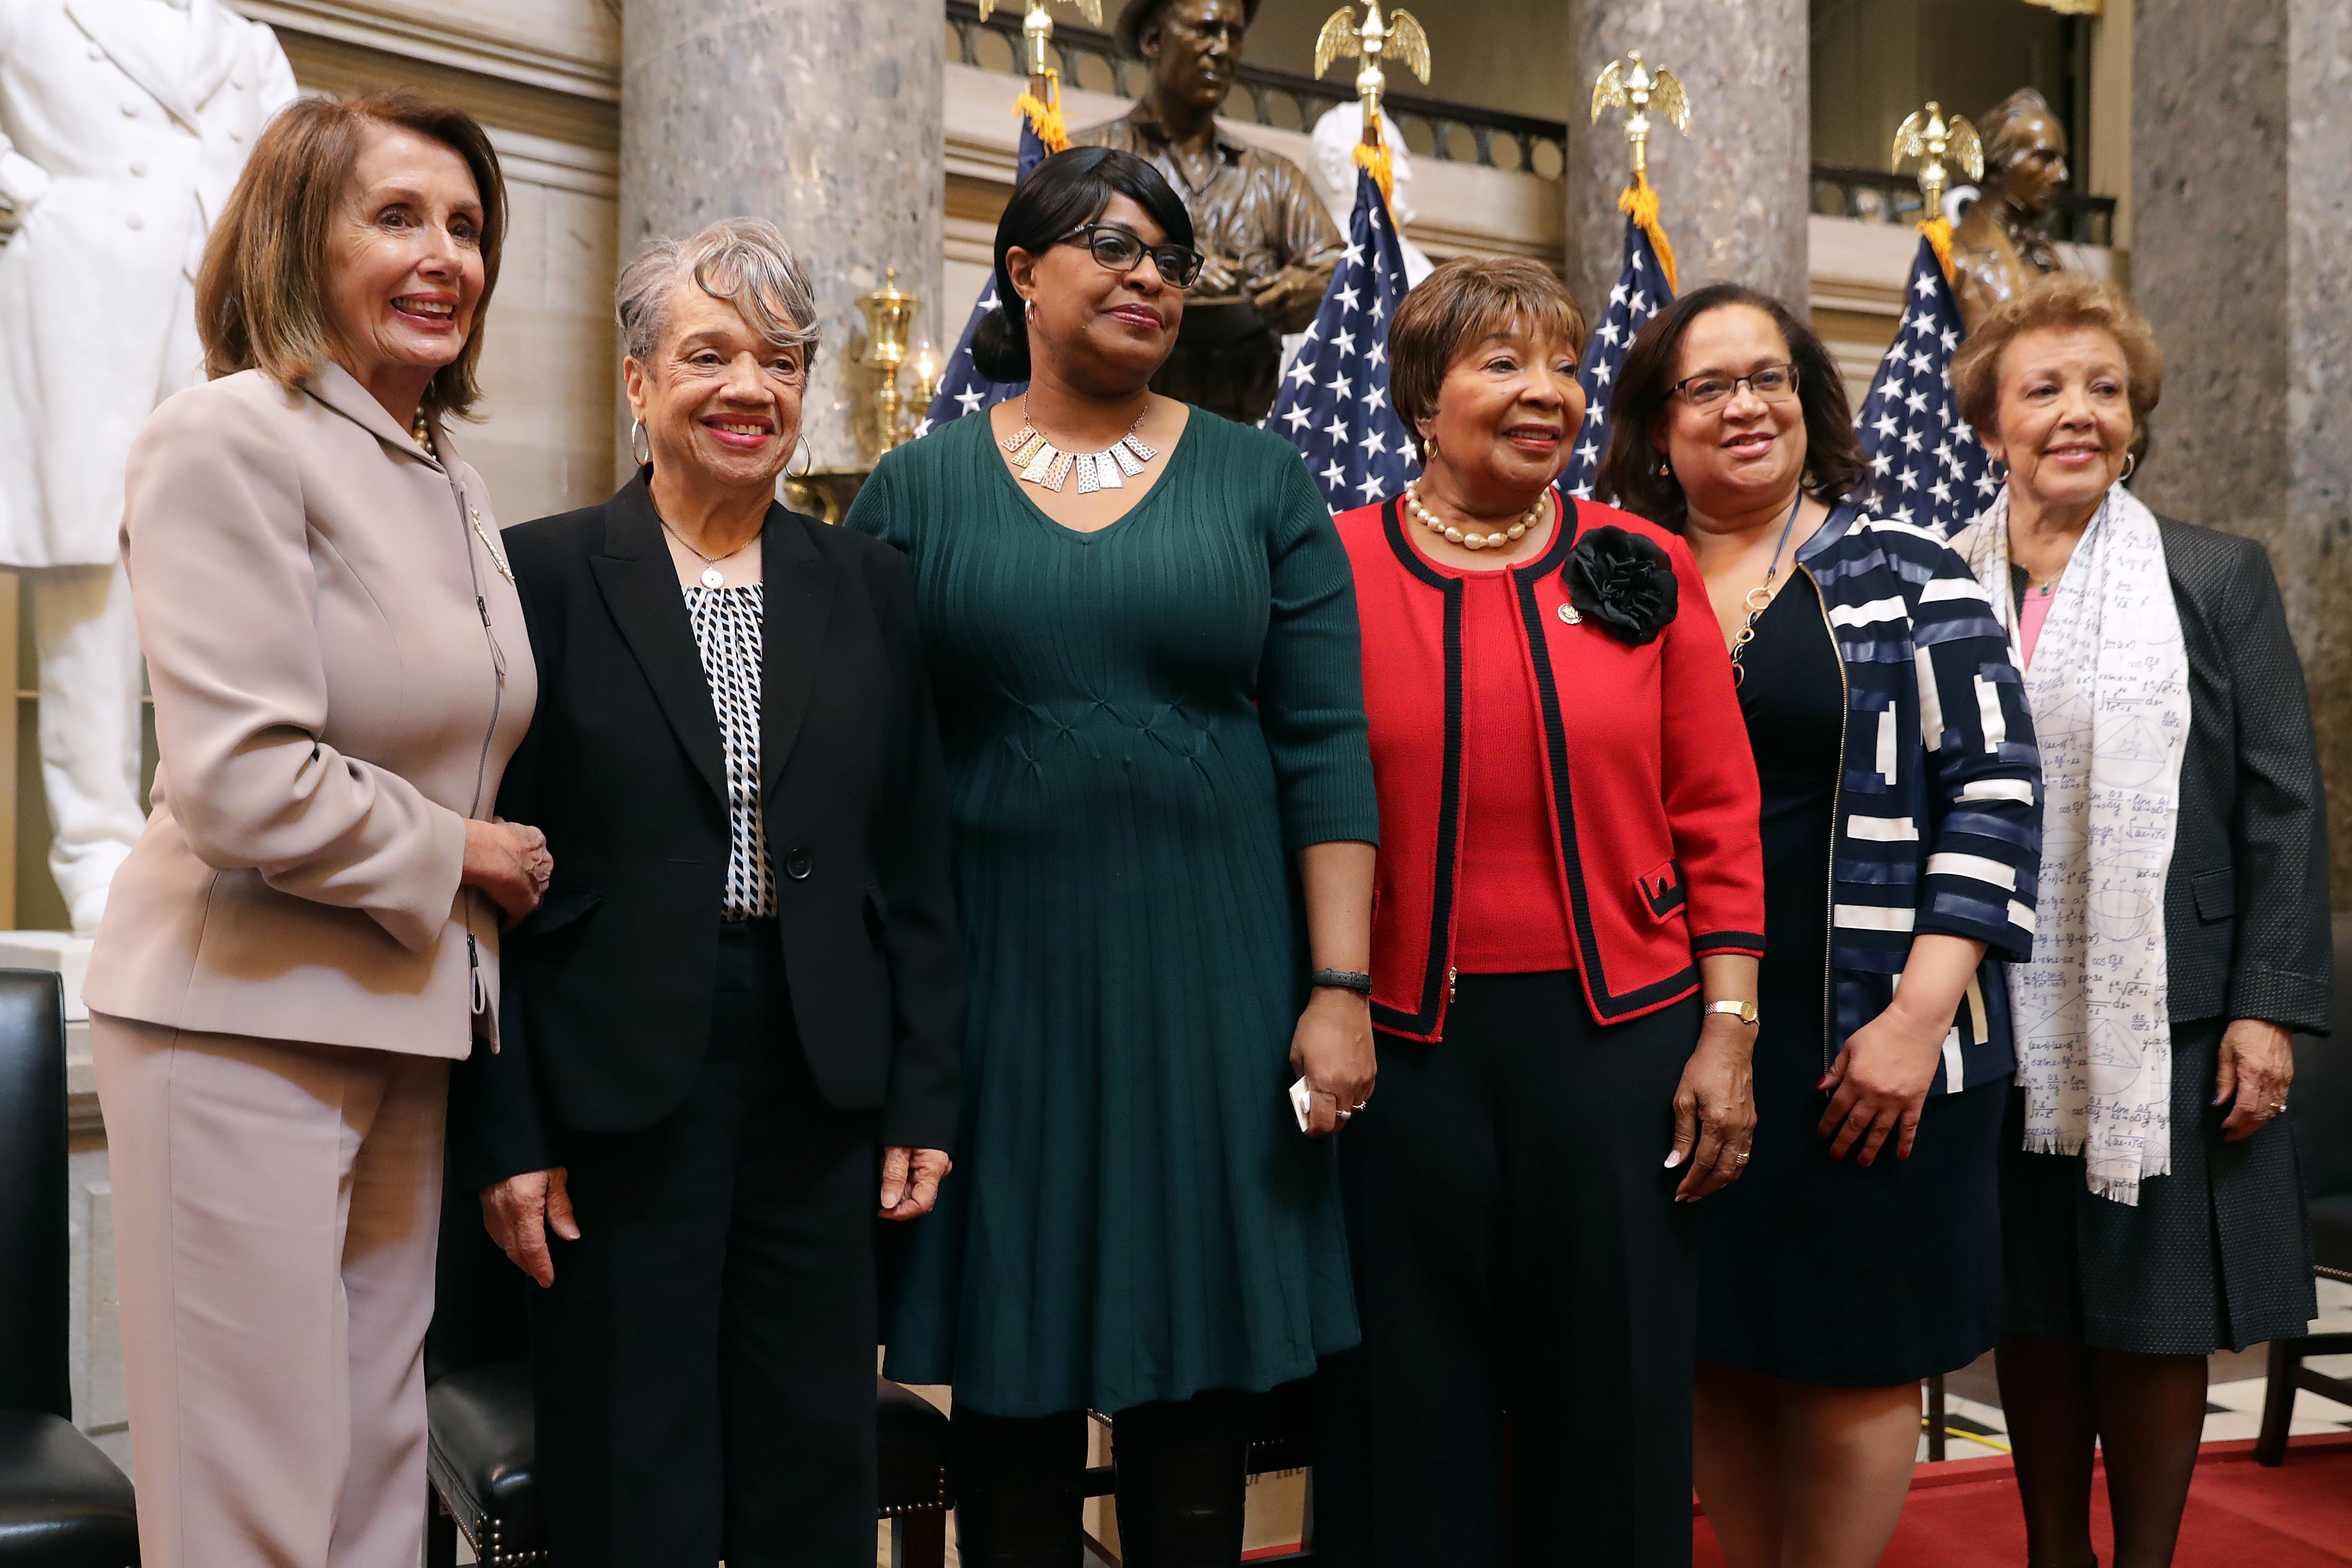 Speaker of the House Nancy Pelosi, Dr. Christine Darden, Carolyn Lewis, Rep. Eddie Bernice Johnson, Maida Robinson and Joylette Hylick at the U.S. Capitol March 27, 2019. | Source: Getty Images